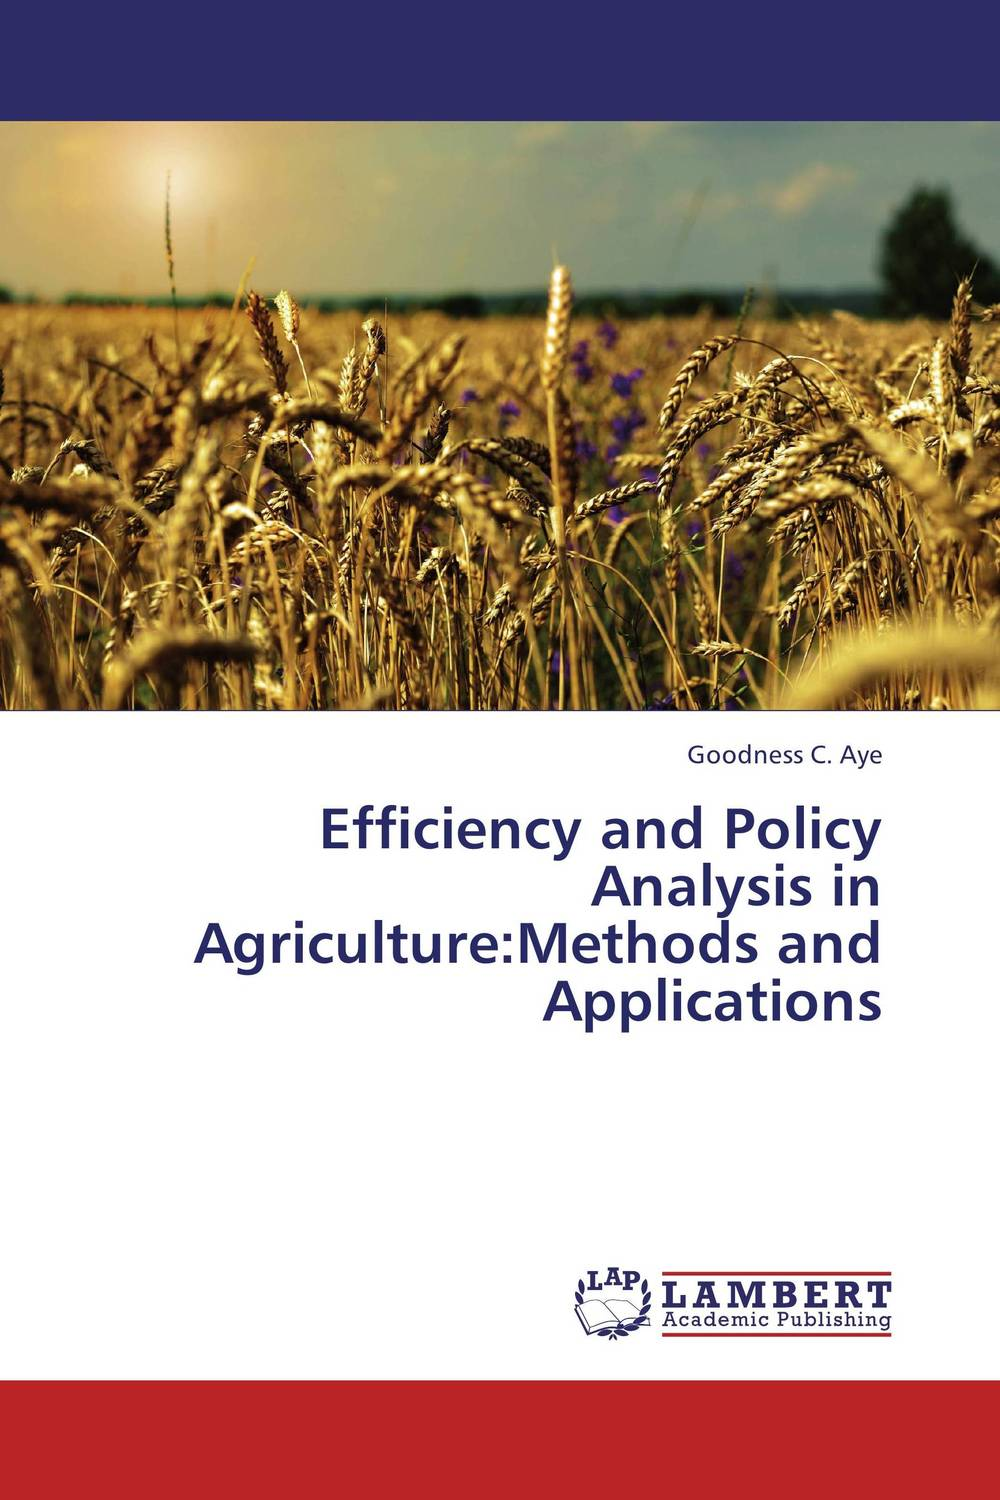 Efficiency and Policy Analysis in Agriculture:Methods and Applications